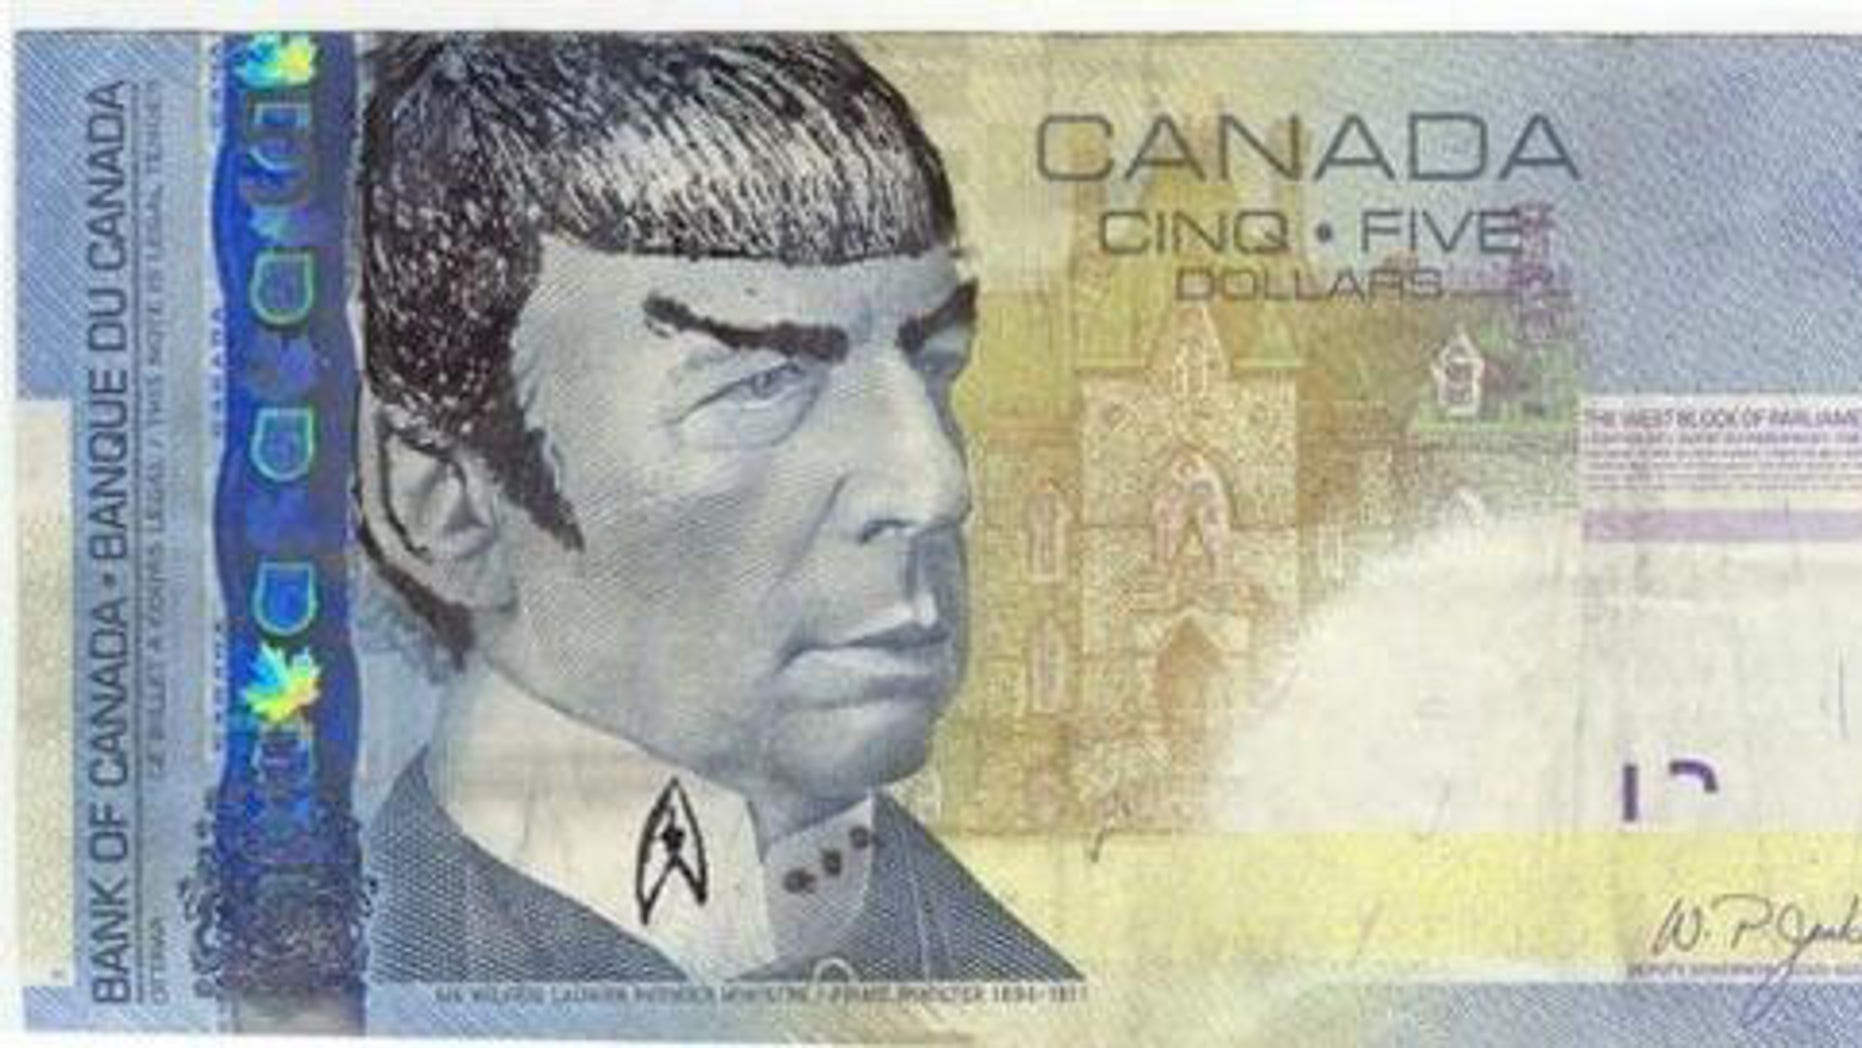 Star Trek fans alter Sir Wilfrid Laurier's face to resemble that of Leonard Nimoy's 'Spock'